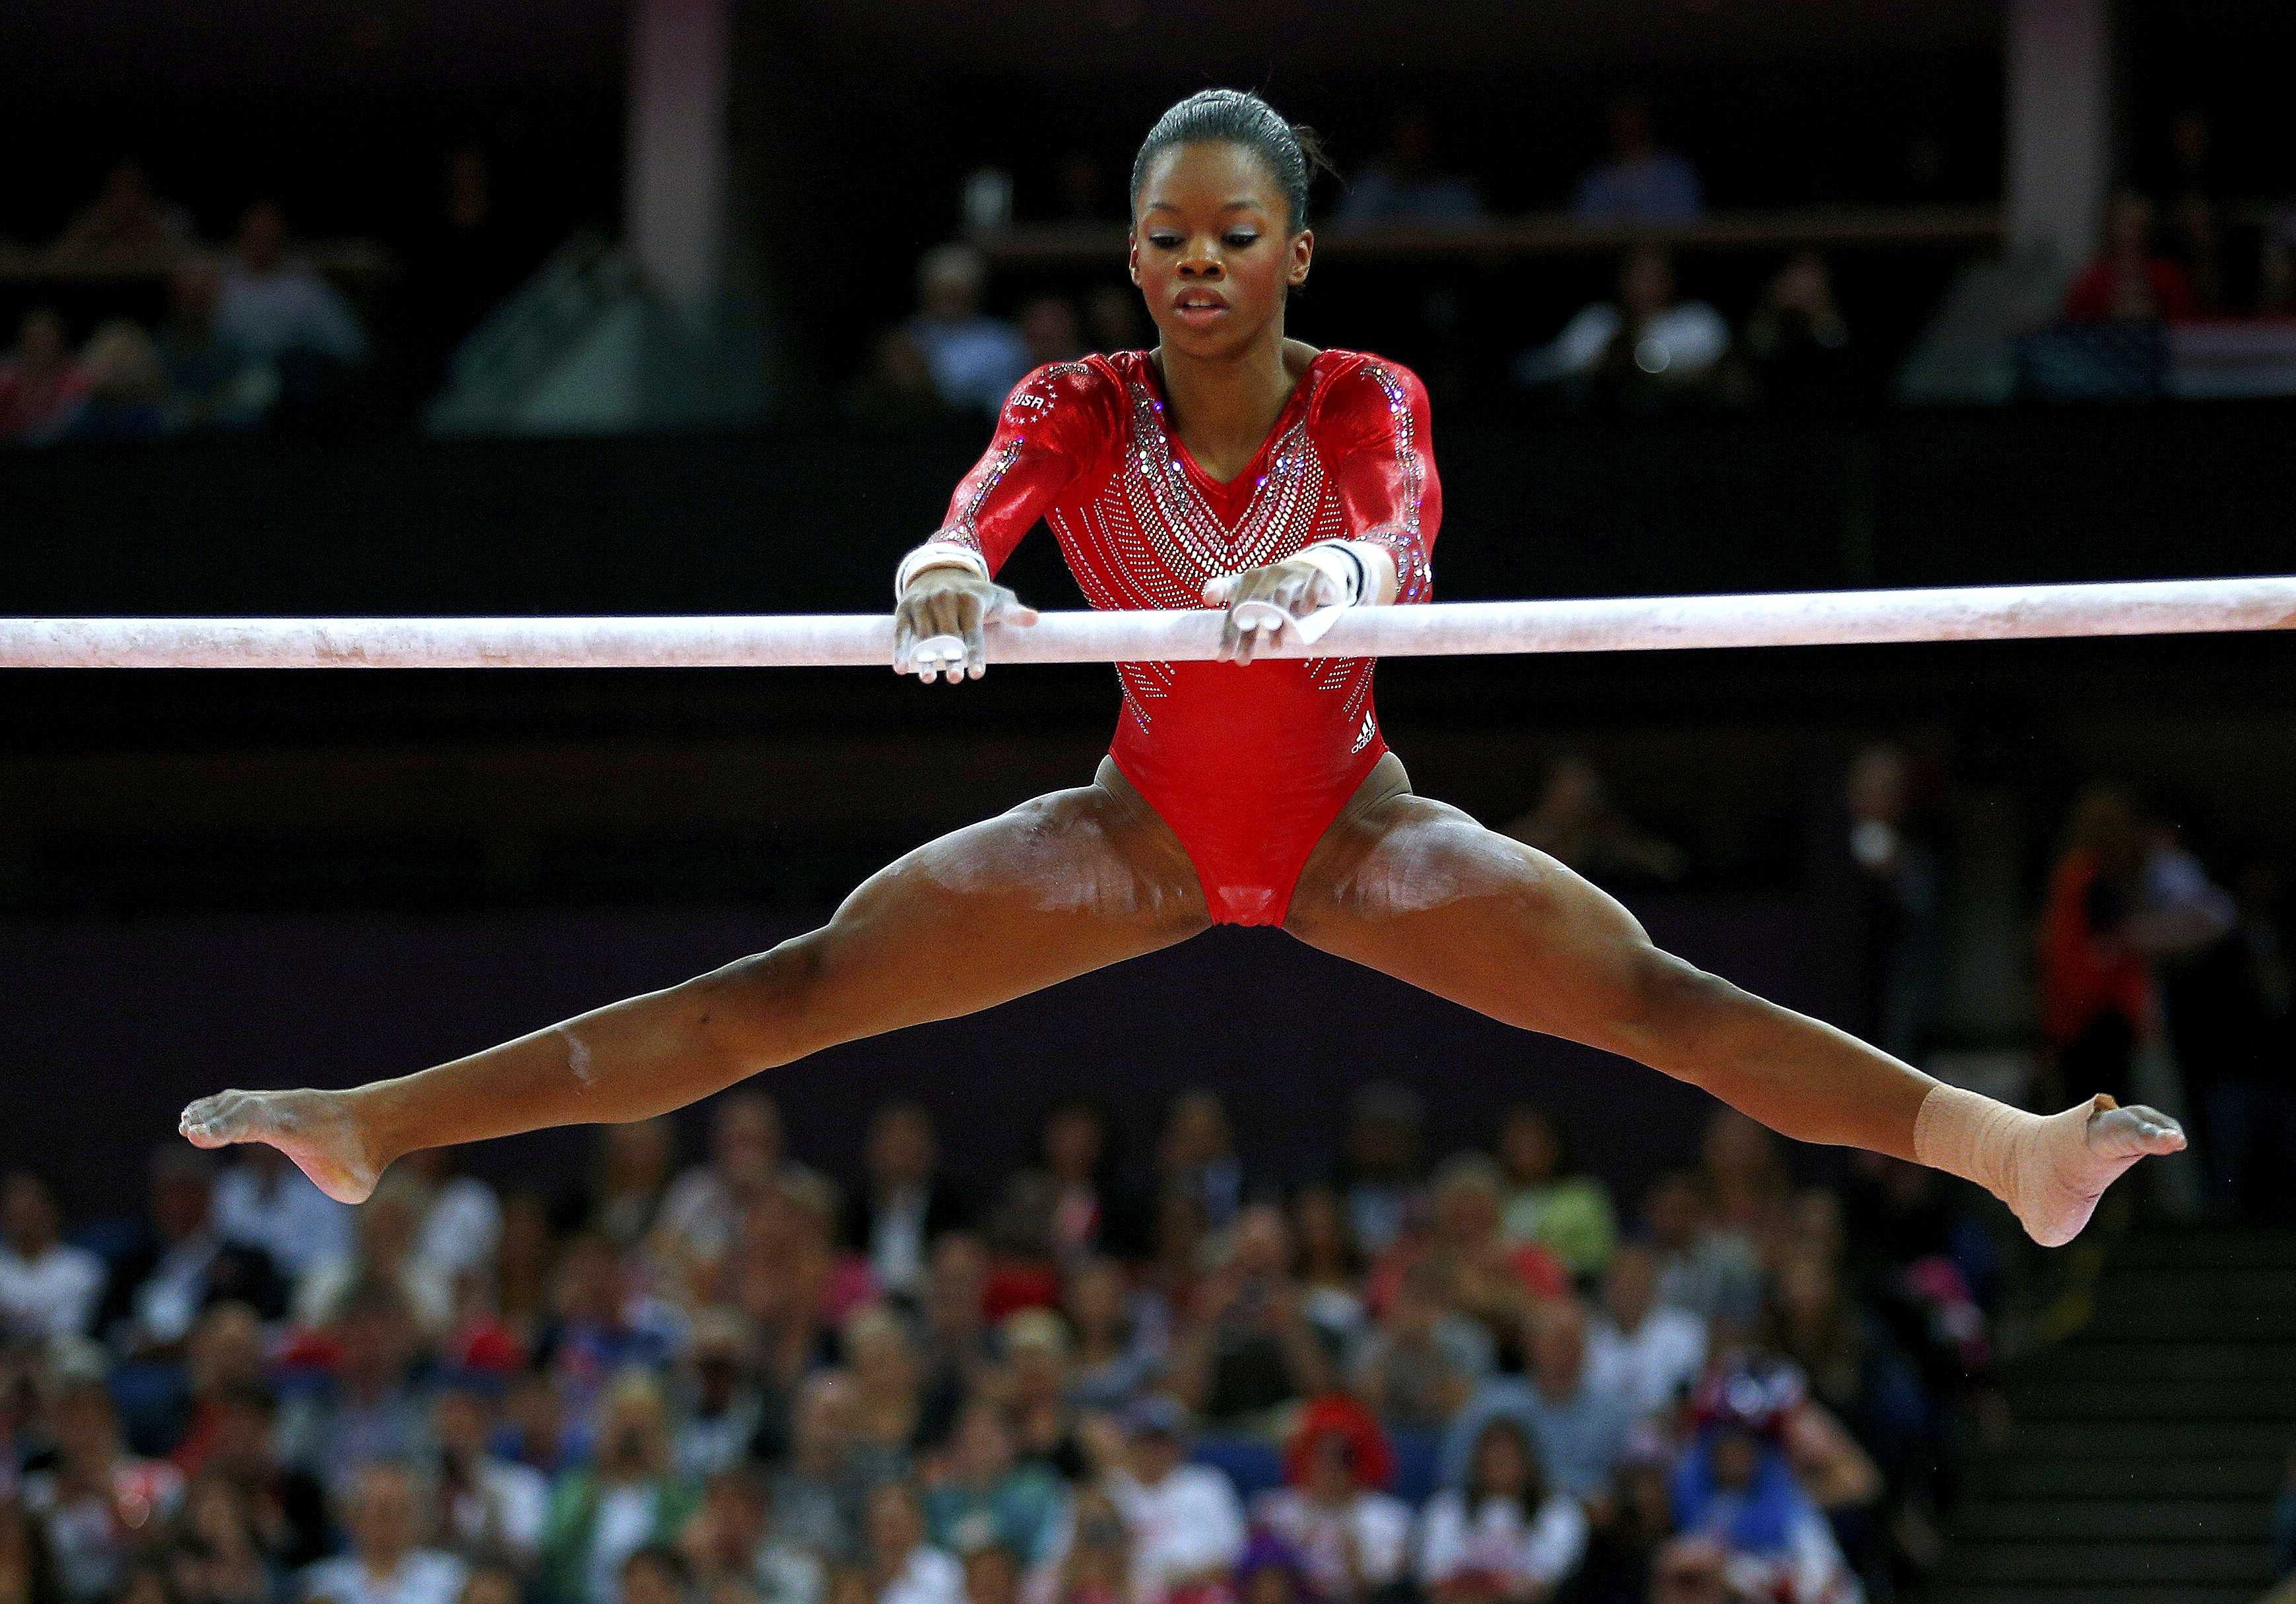 Download Wallpapers Download 1024x1024 usa gymnast 1024x1024